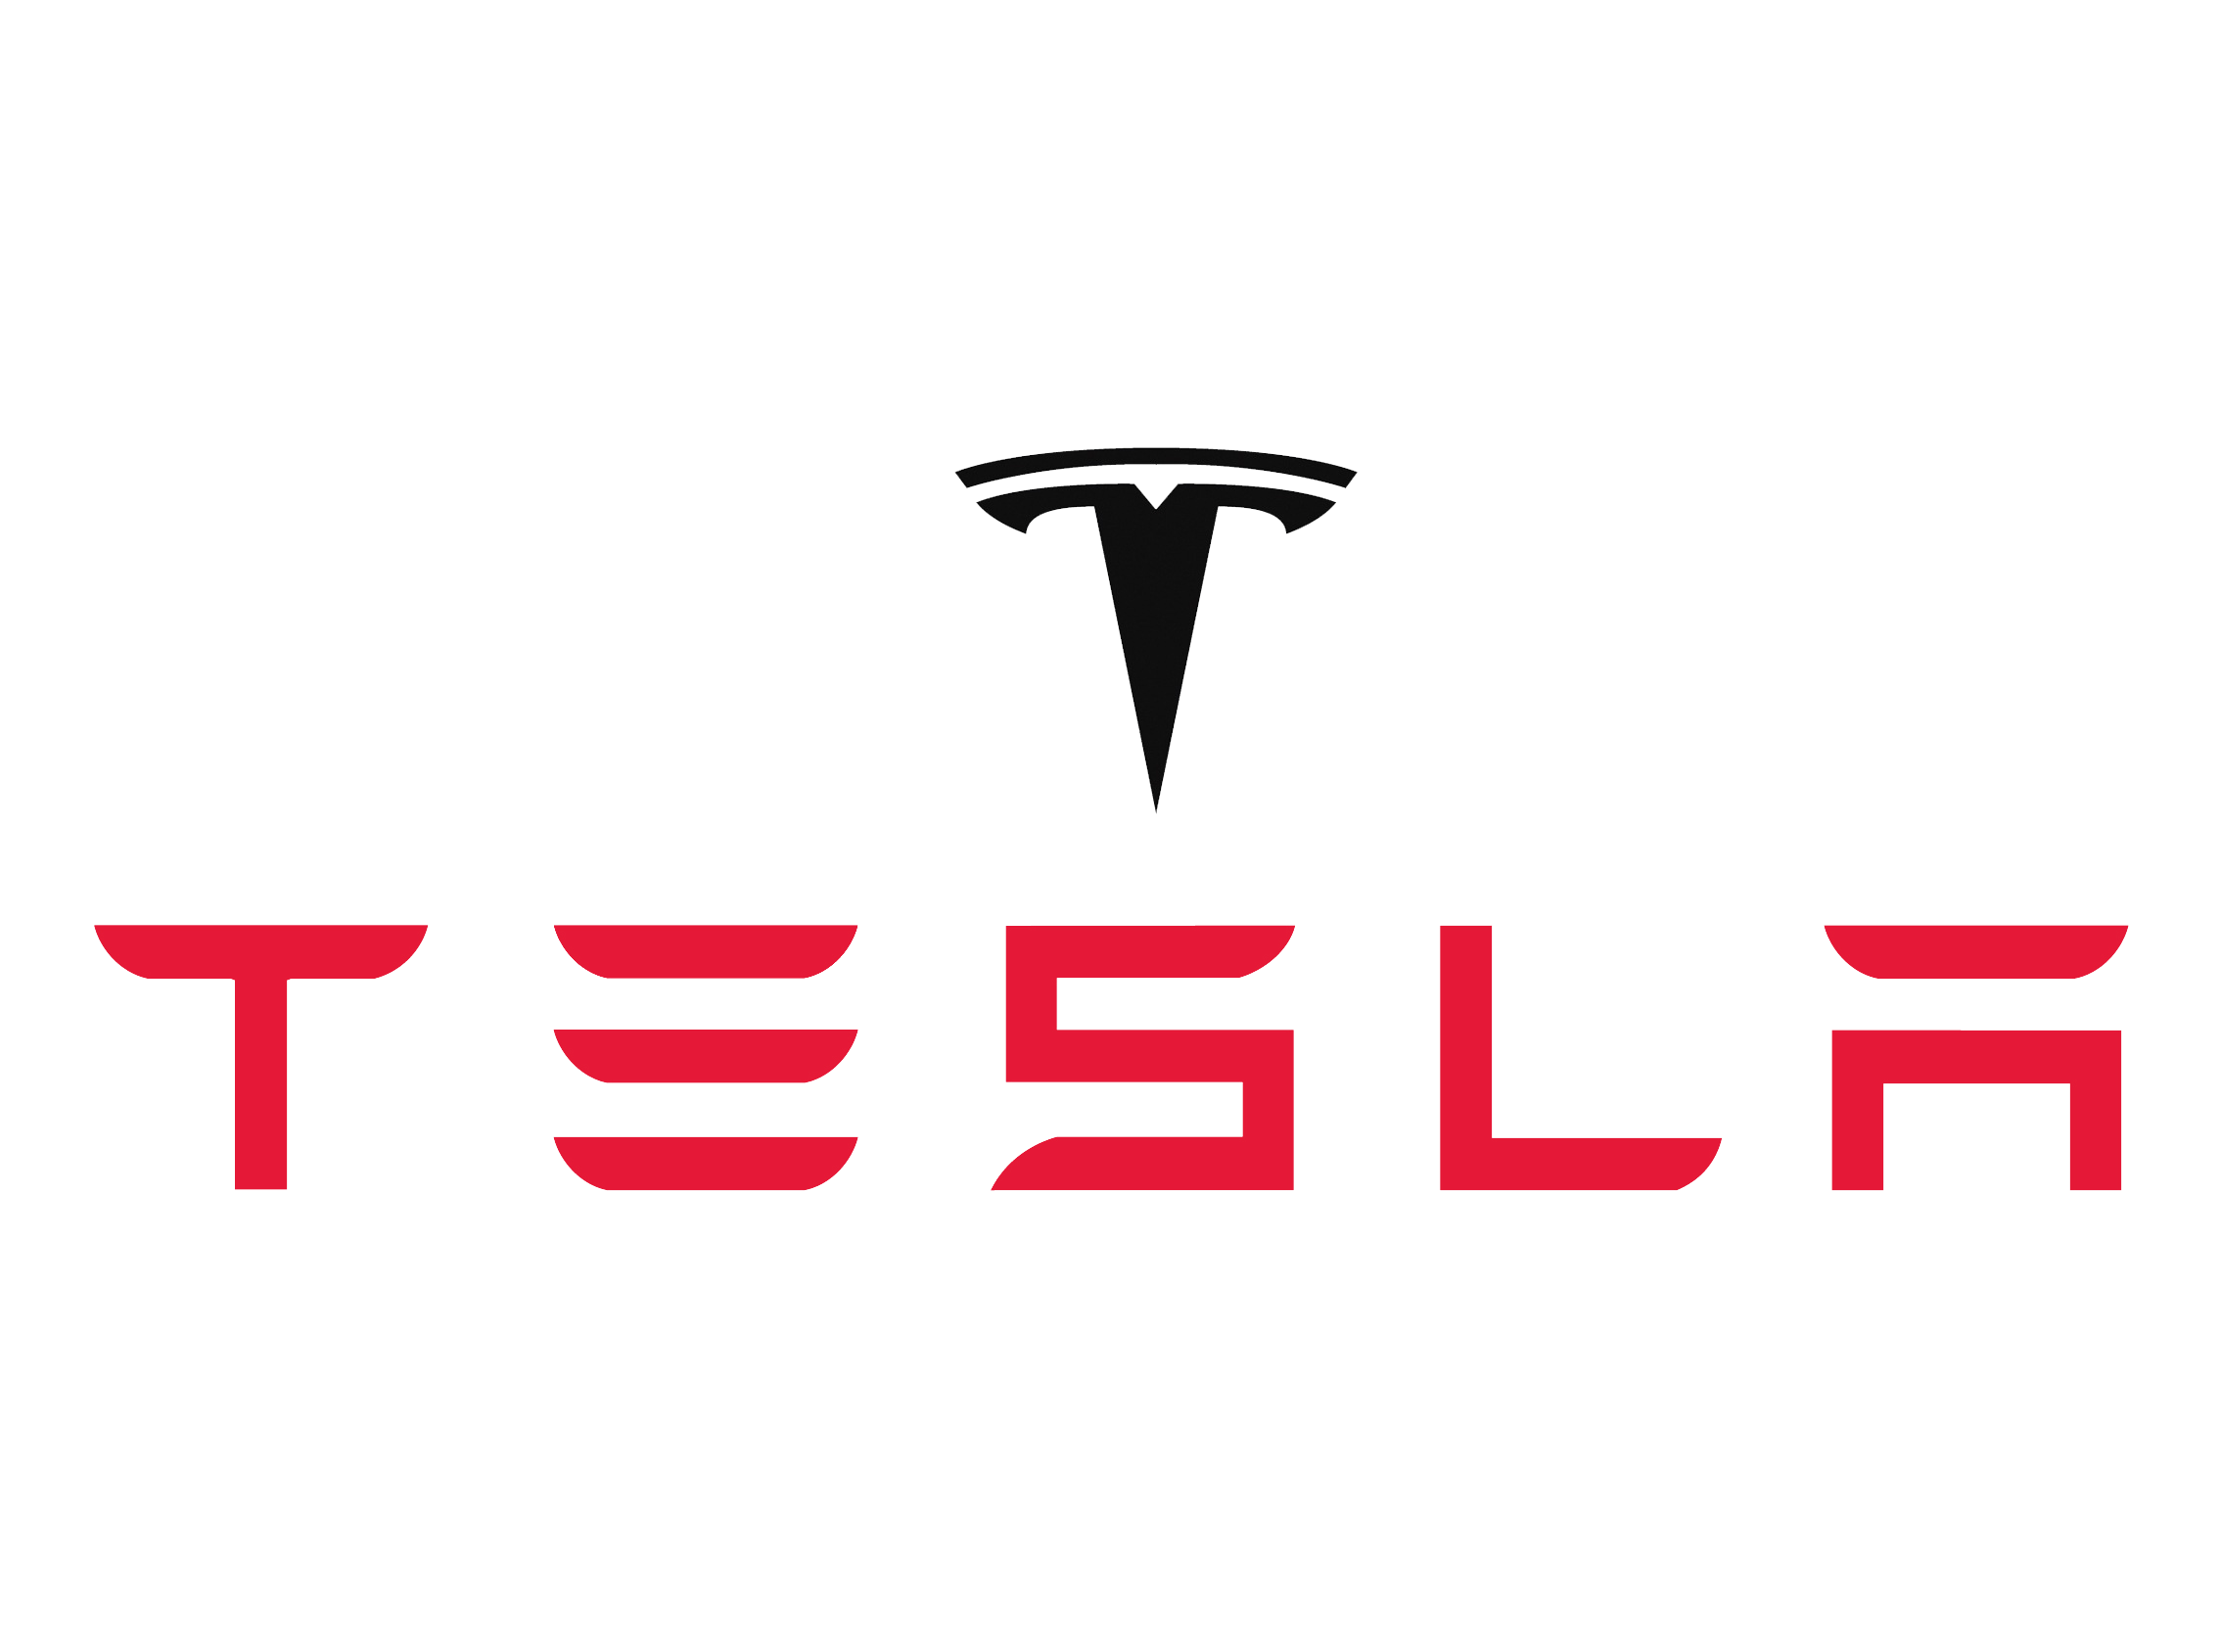 Tesla Logo - Tesla Logo, Tesla Car Symbol Meaning and History | Car Brand Names.com